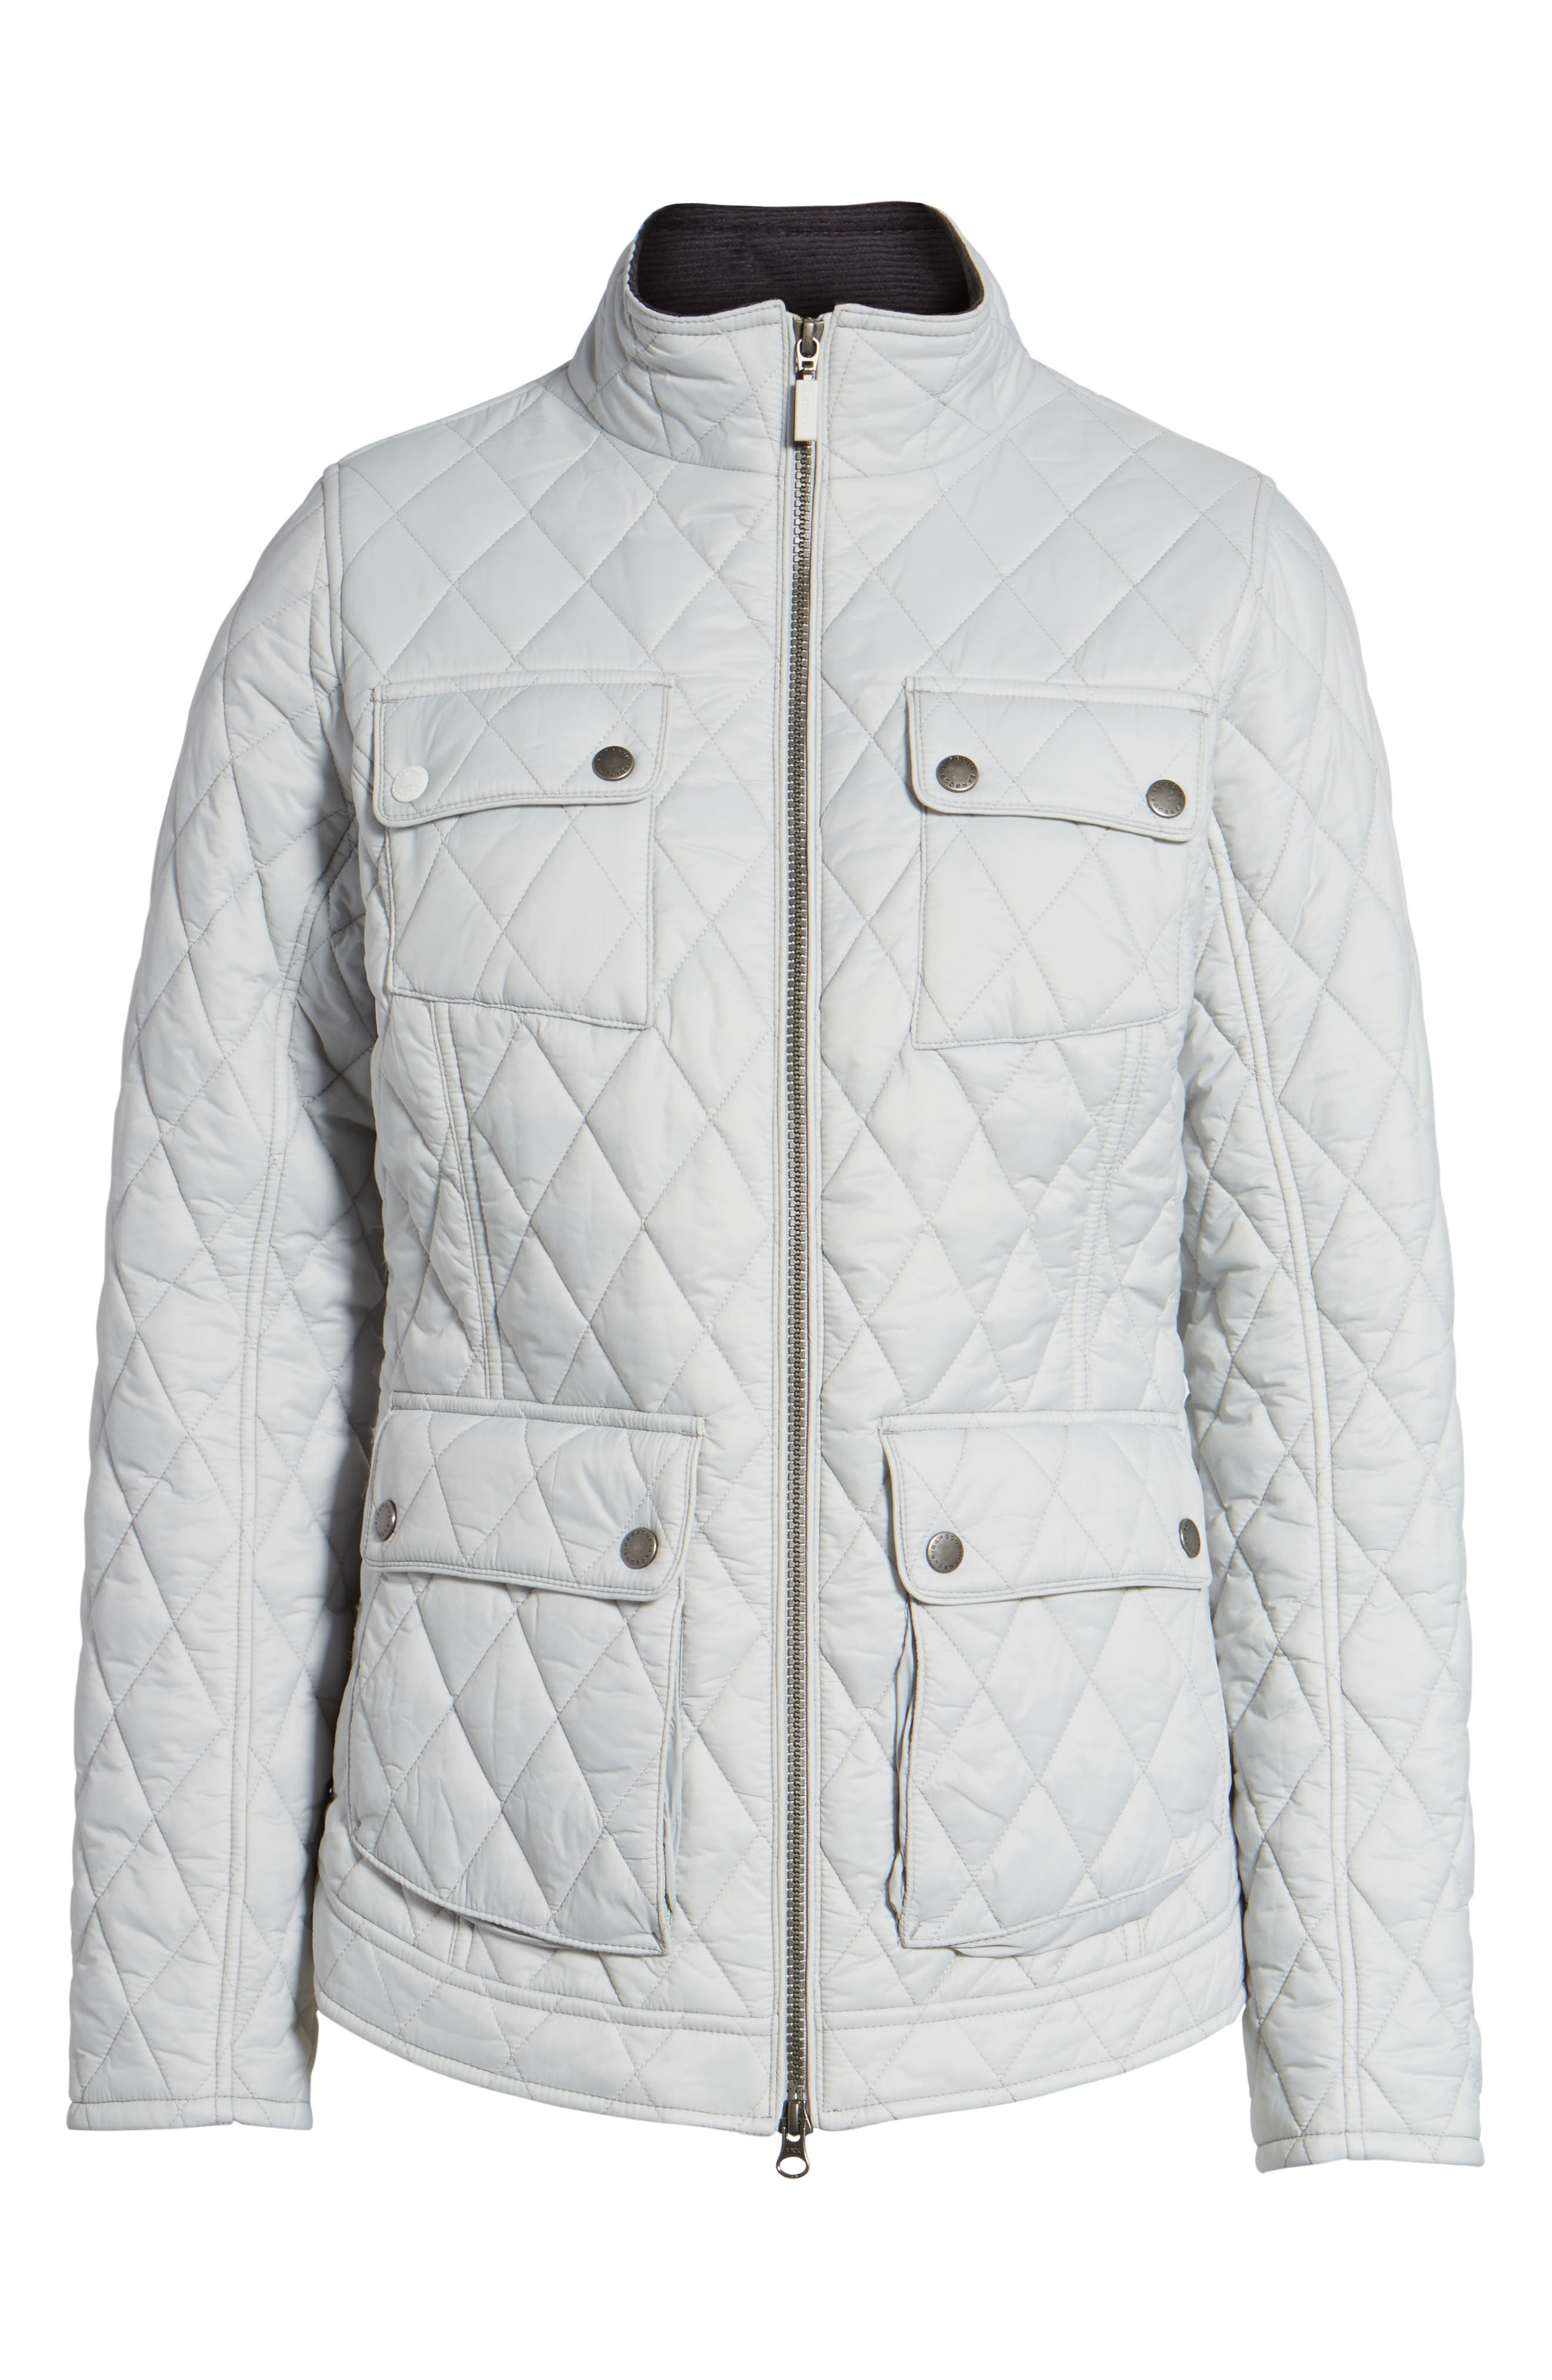 Dolostone Quilted Jacket,                             Alternate thumbnail 6, color,                             Ice White